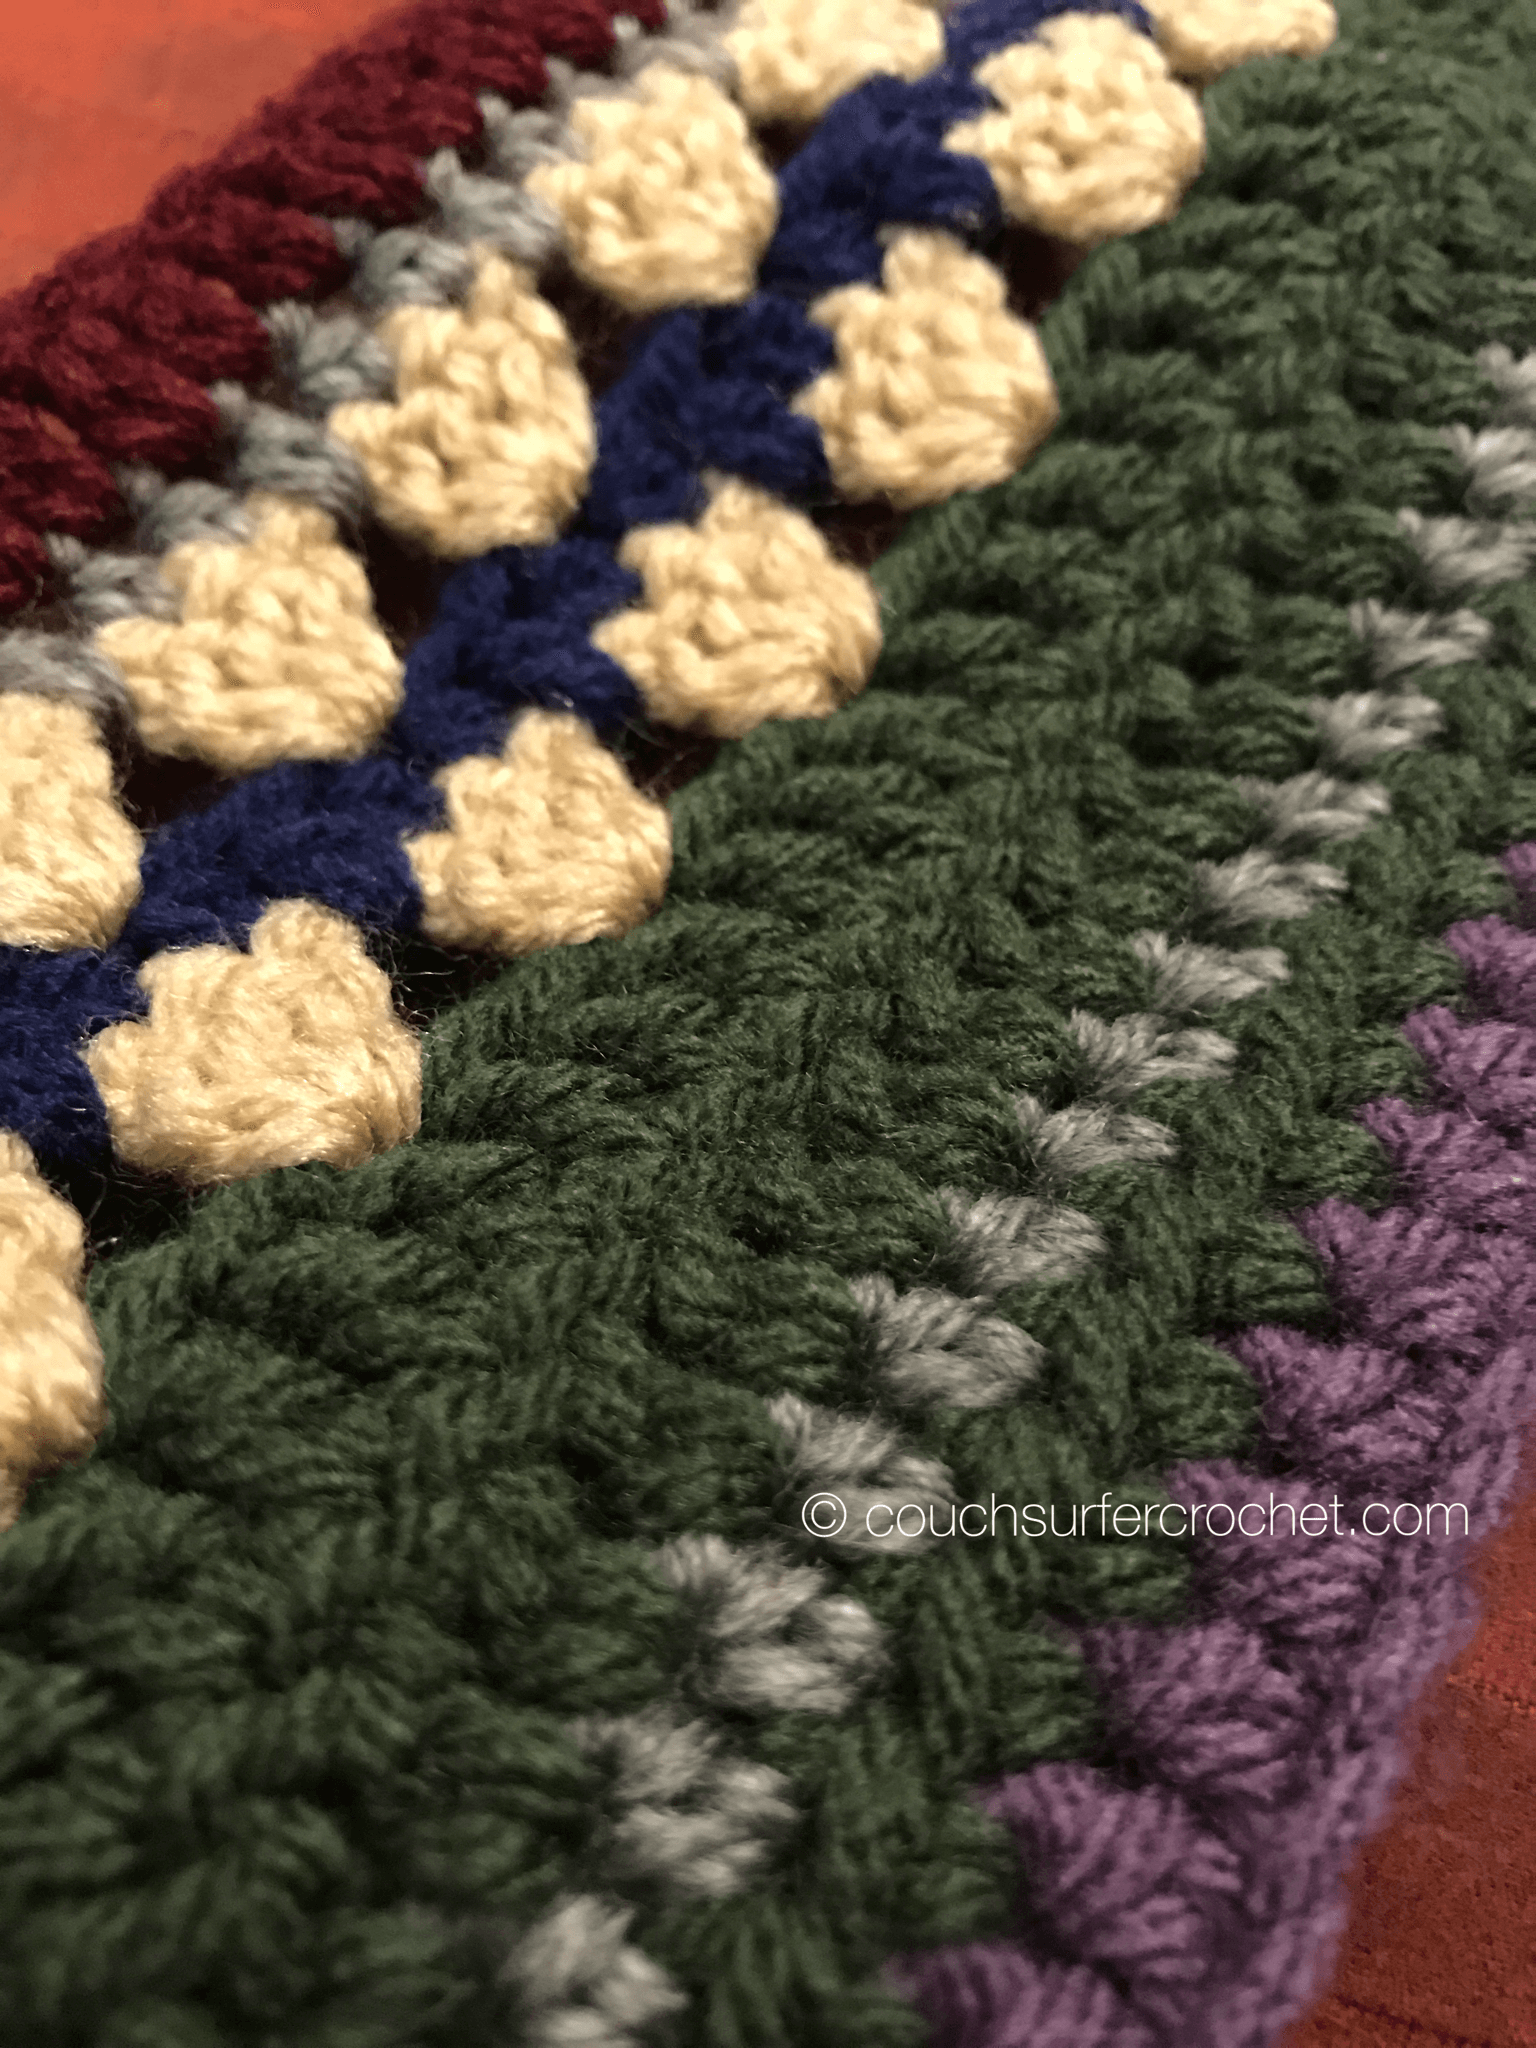 Mixed Stitch CAL - Week 1 - Couch Surfer Crochet